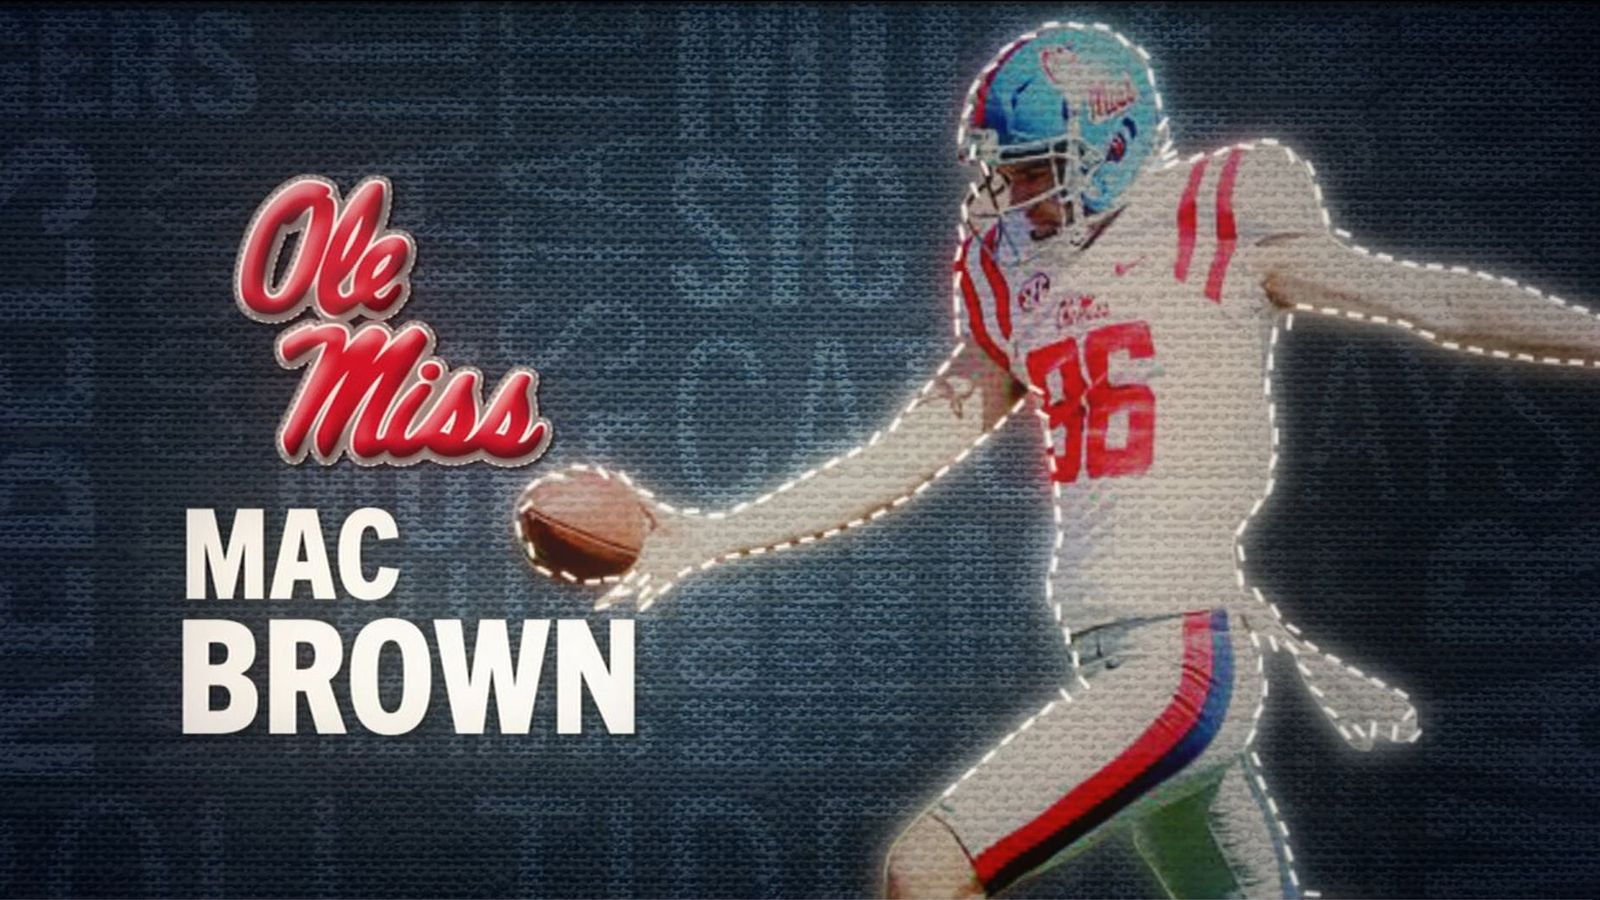 I am the SEC: Ole Miss' Mac Brown